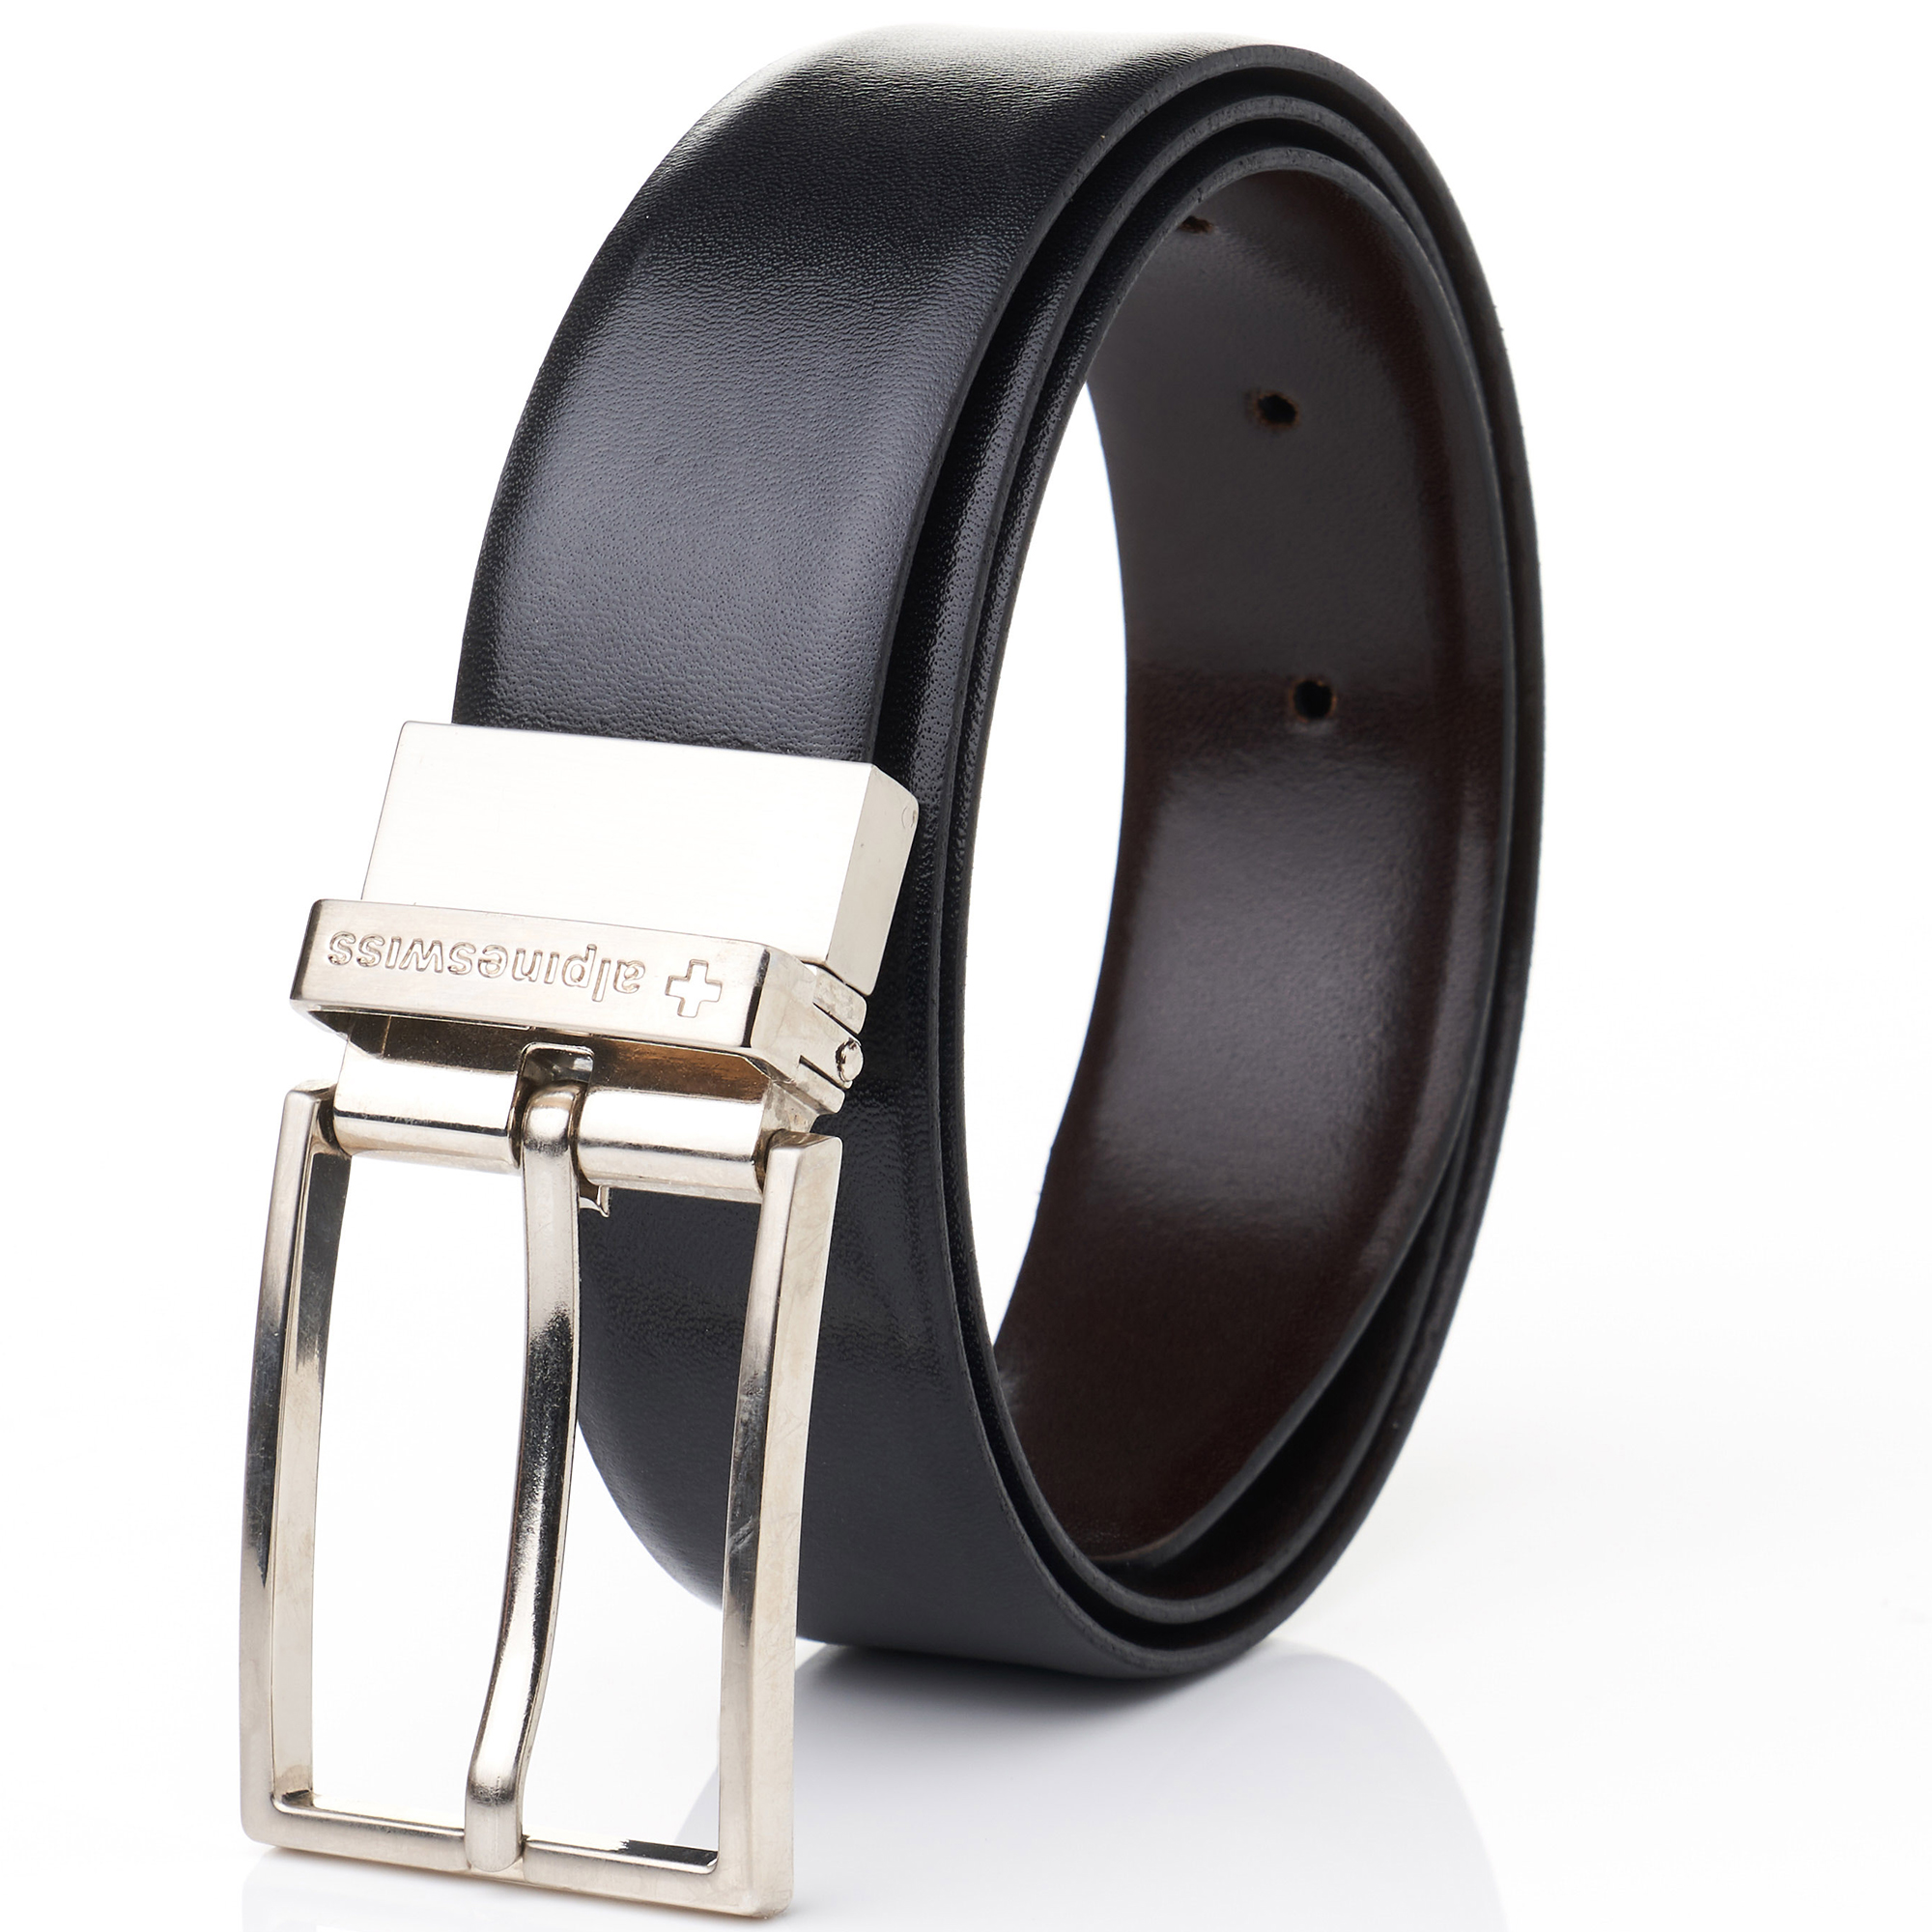 Alpine-Swiss-Mens-Dress-Belt-Reversible-Black-Brown-Leather-Imported-from-Spain thumbnail 16